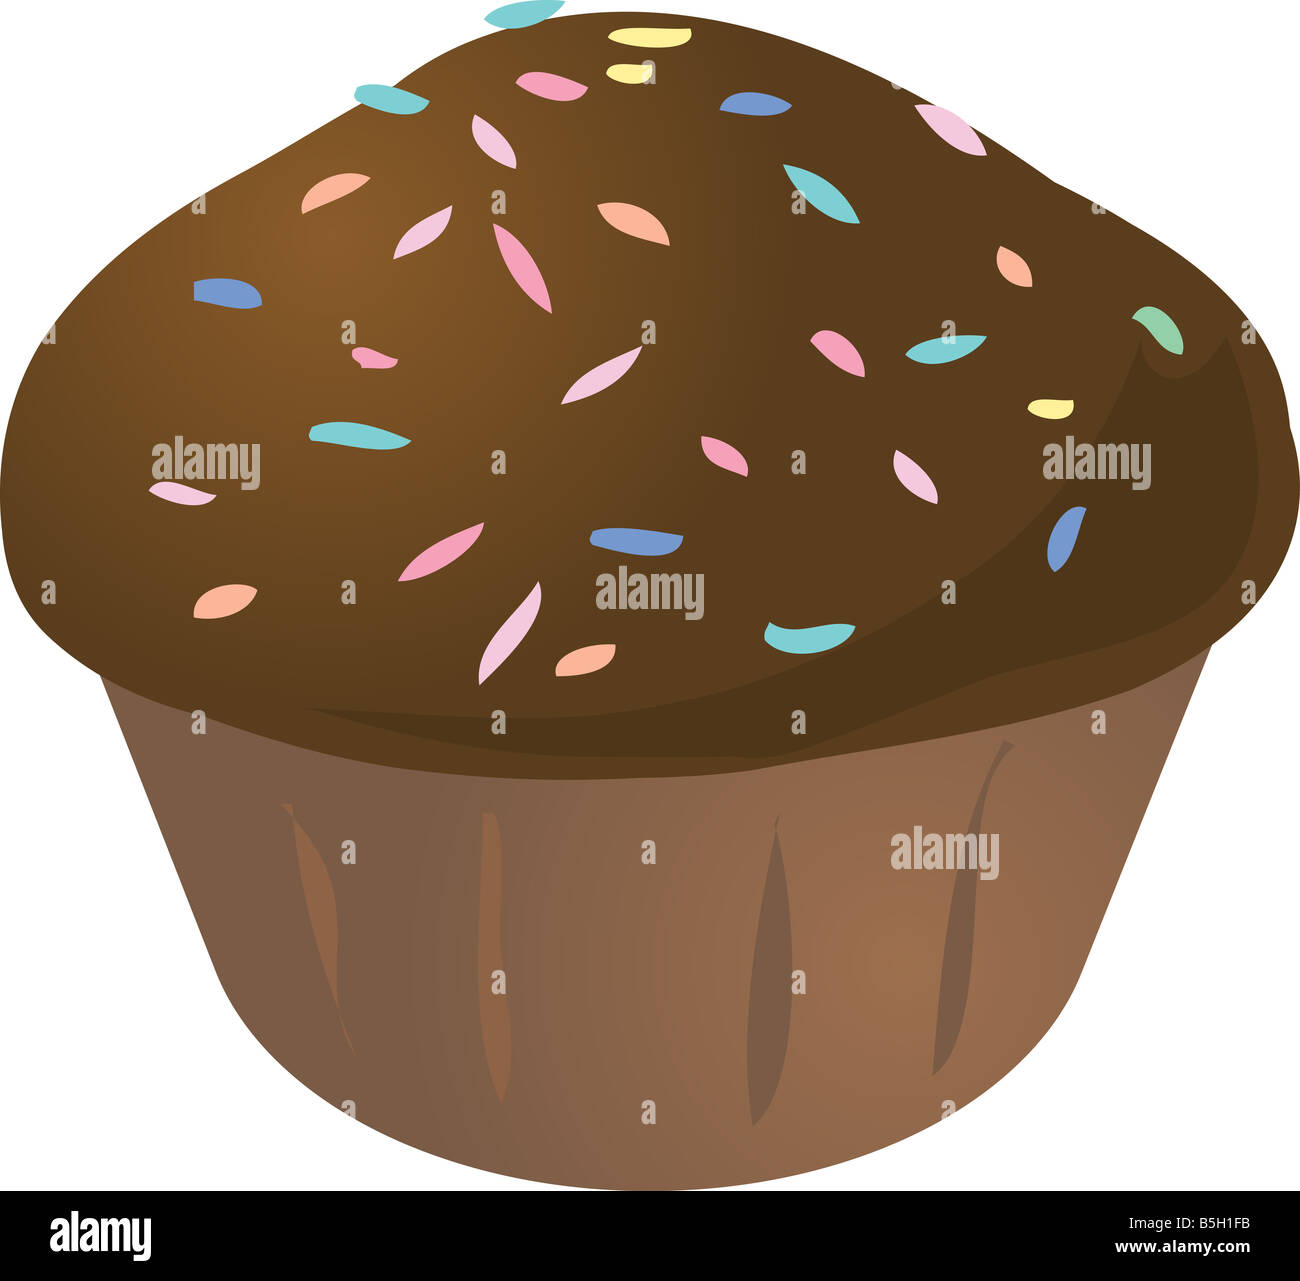 Chocolate with sprinkles cupcake muffin cake illustration - Stock Image